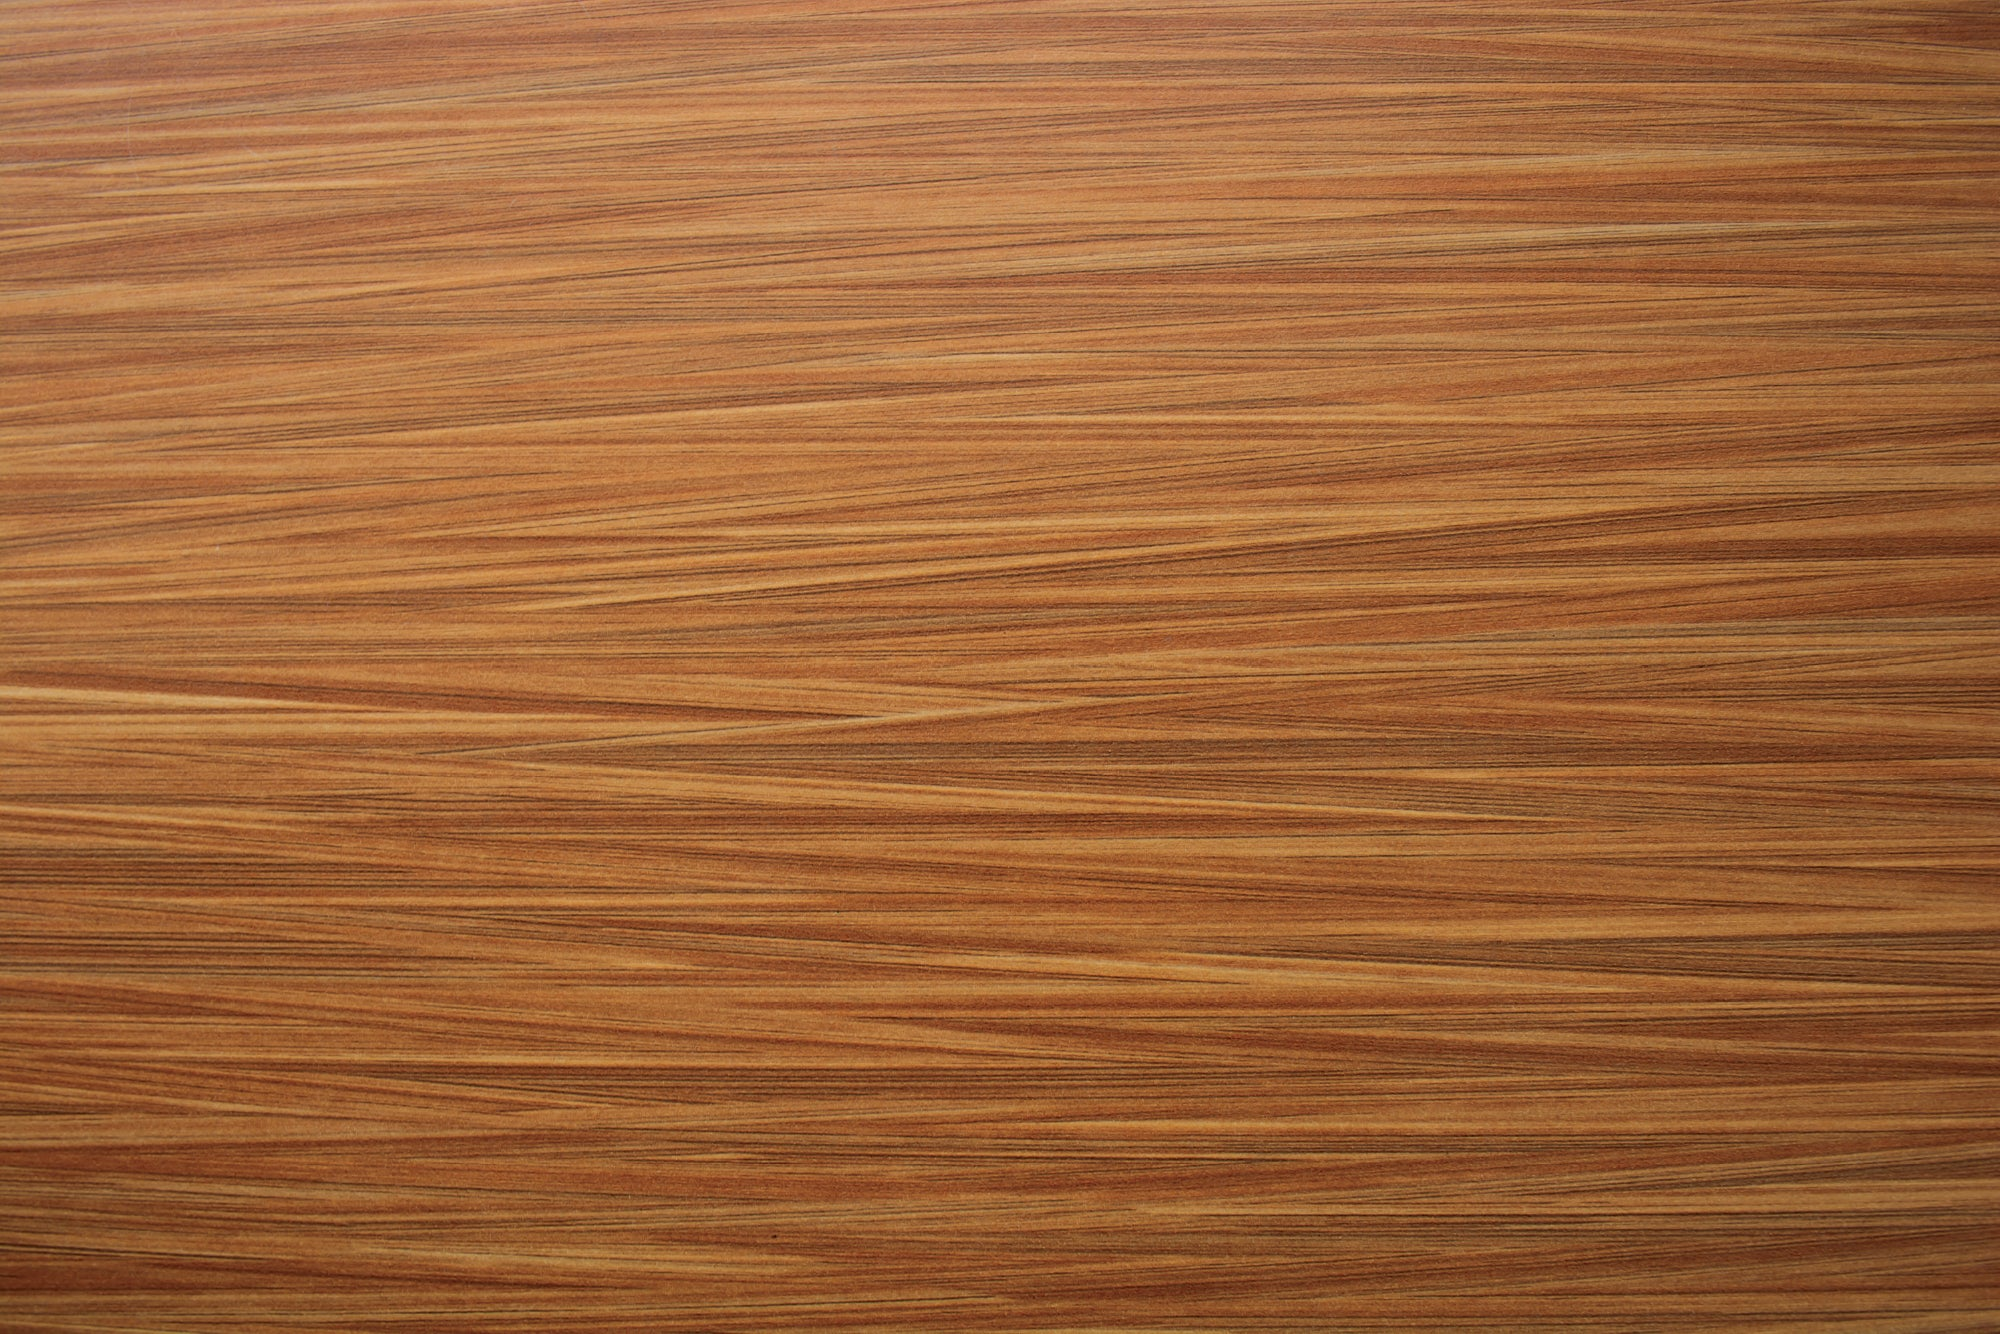 Brown Woodgrain - Wall Mural